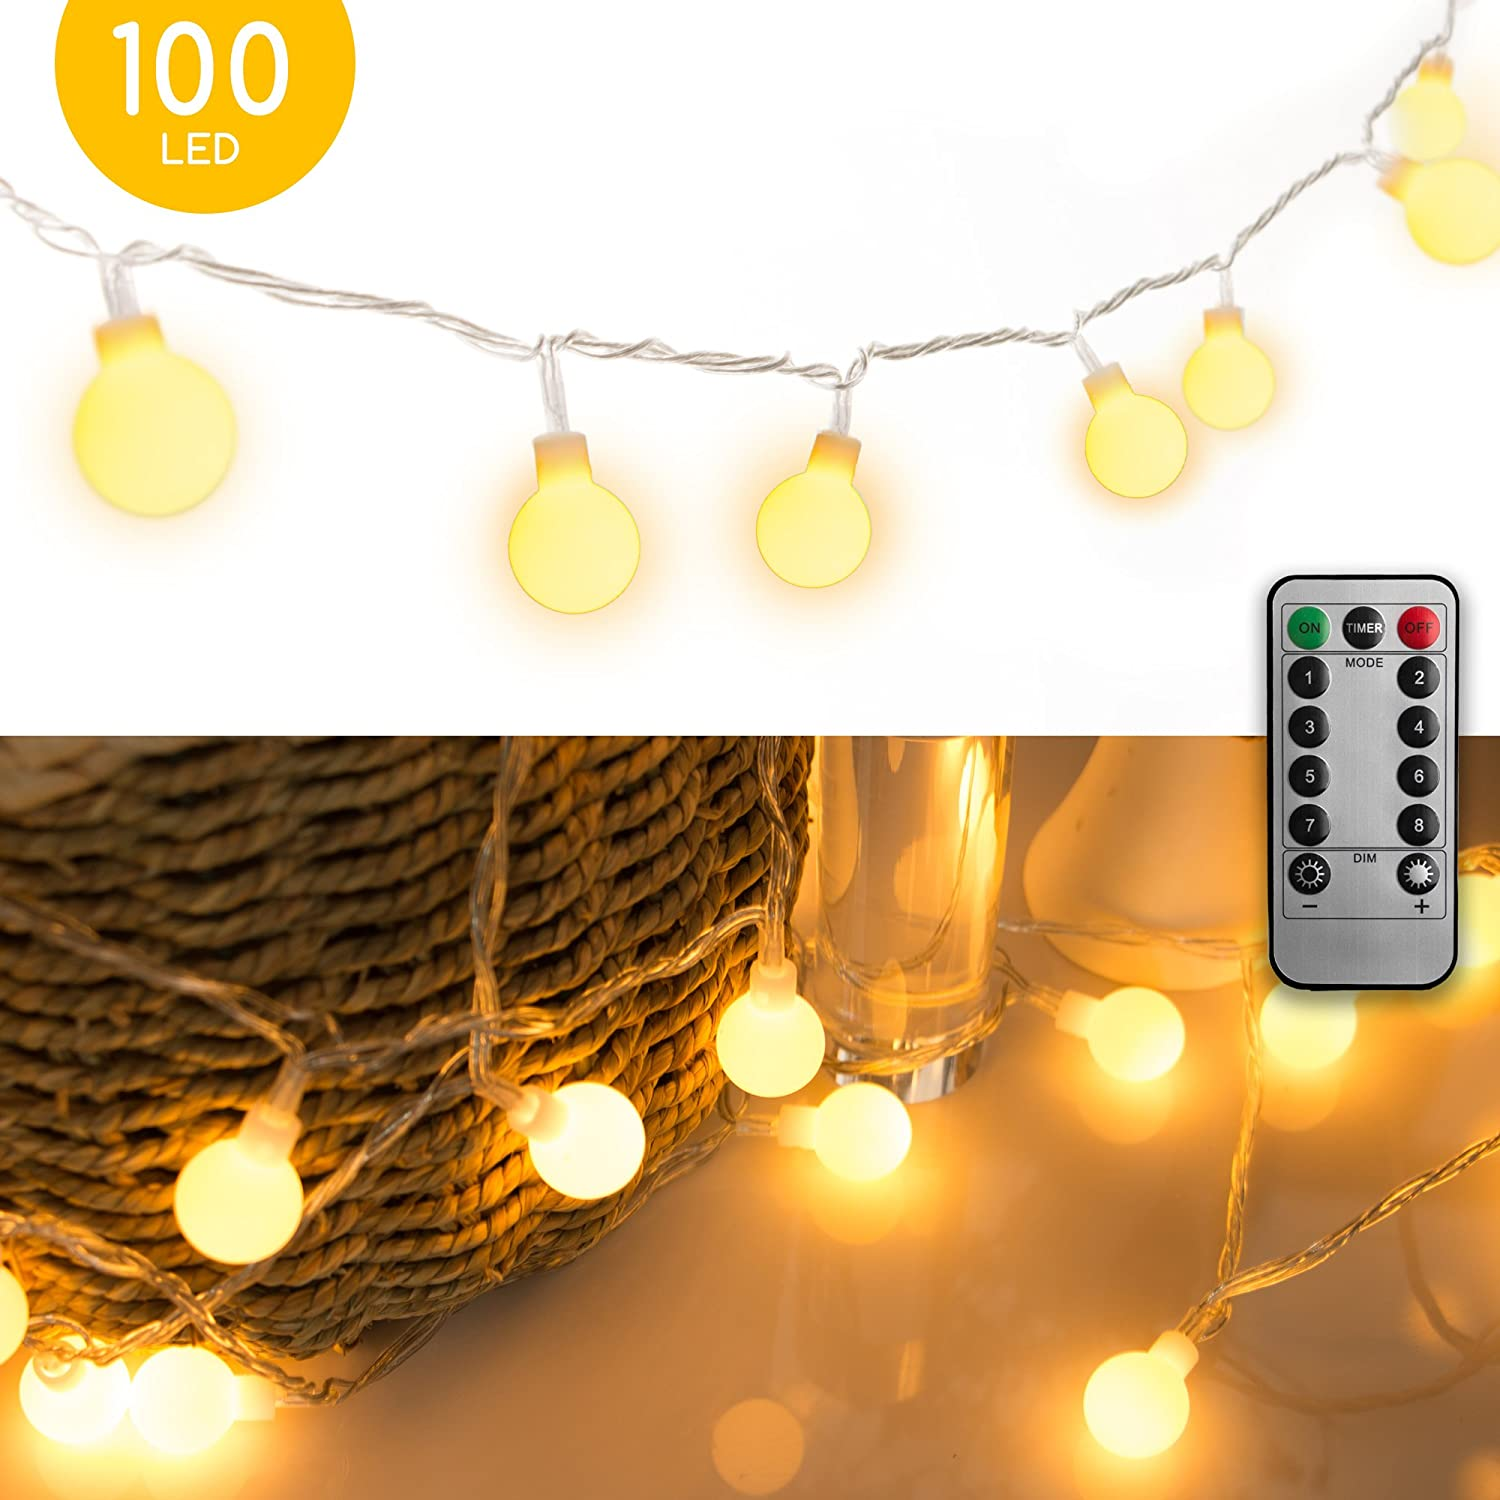 10M 100 LED Globe String Lights Fairy Twinkle Waterproof Light String with Remote & 8 Modes Controller, Transparent String Cable-for Festoon Party/Garden/Christmas/Patio/Wedding Decor, Warm White MineTom